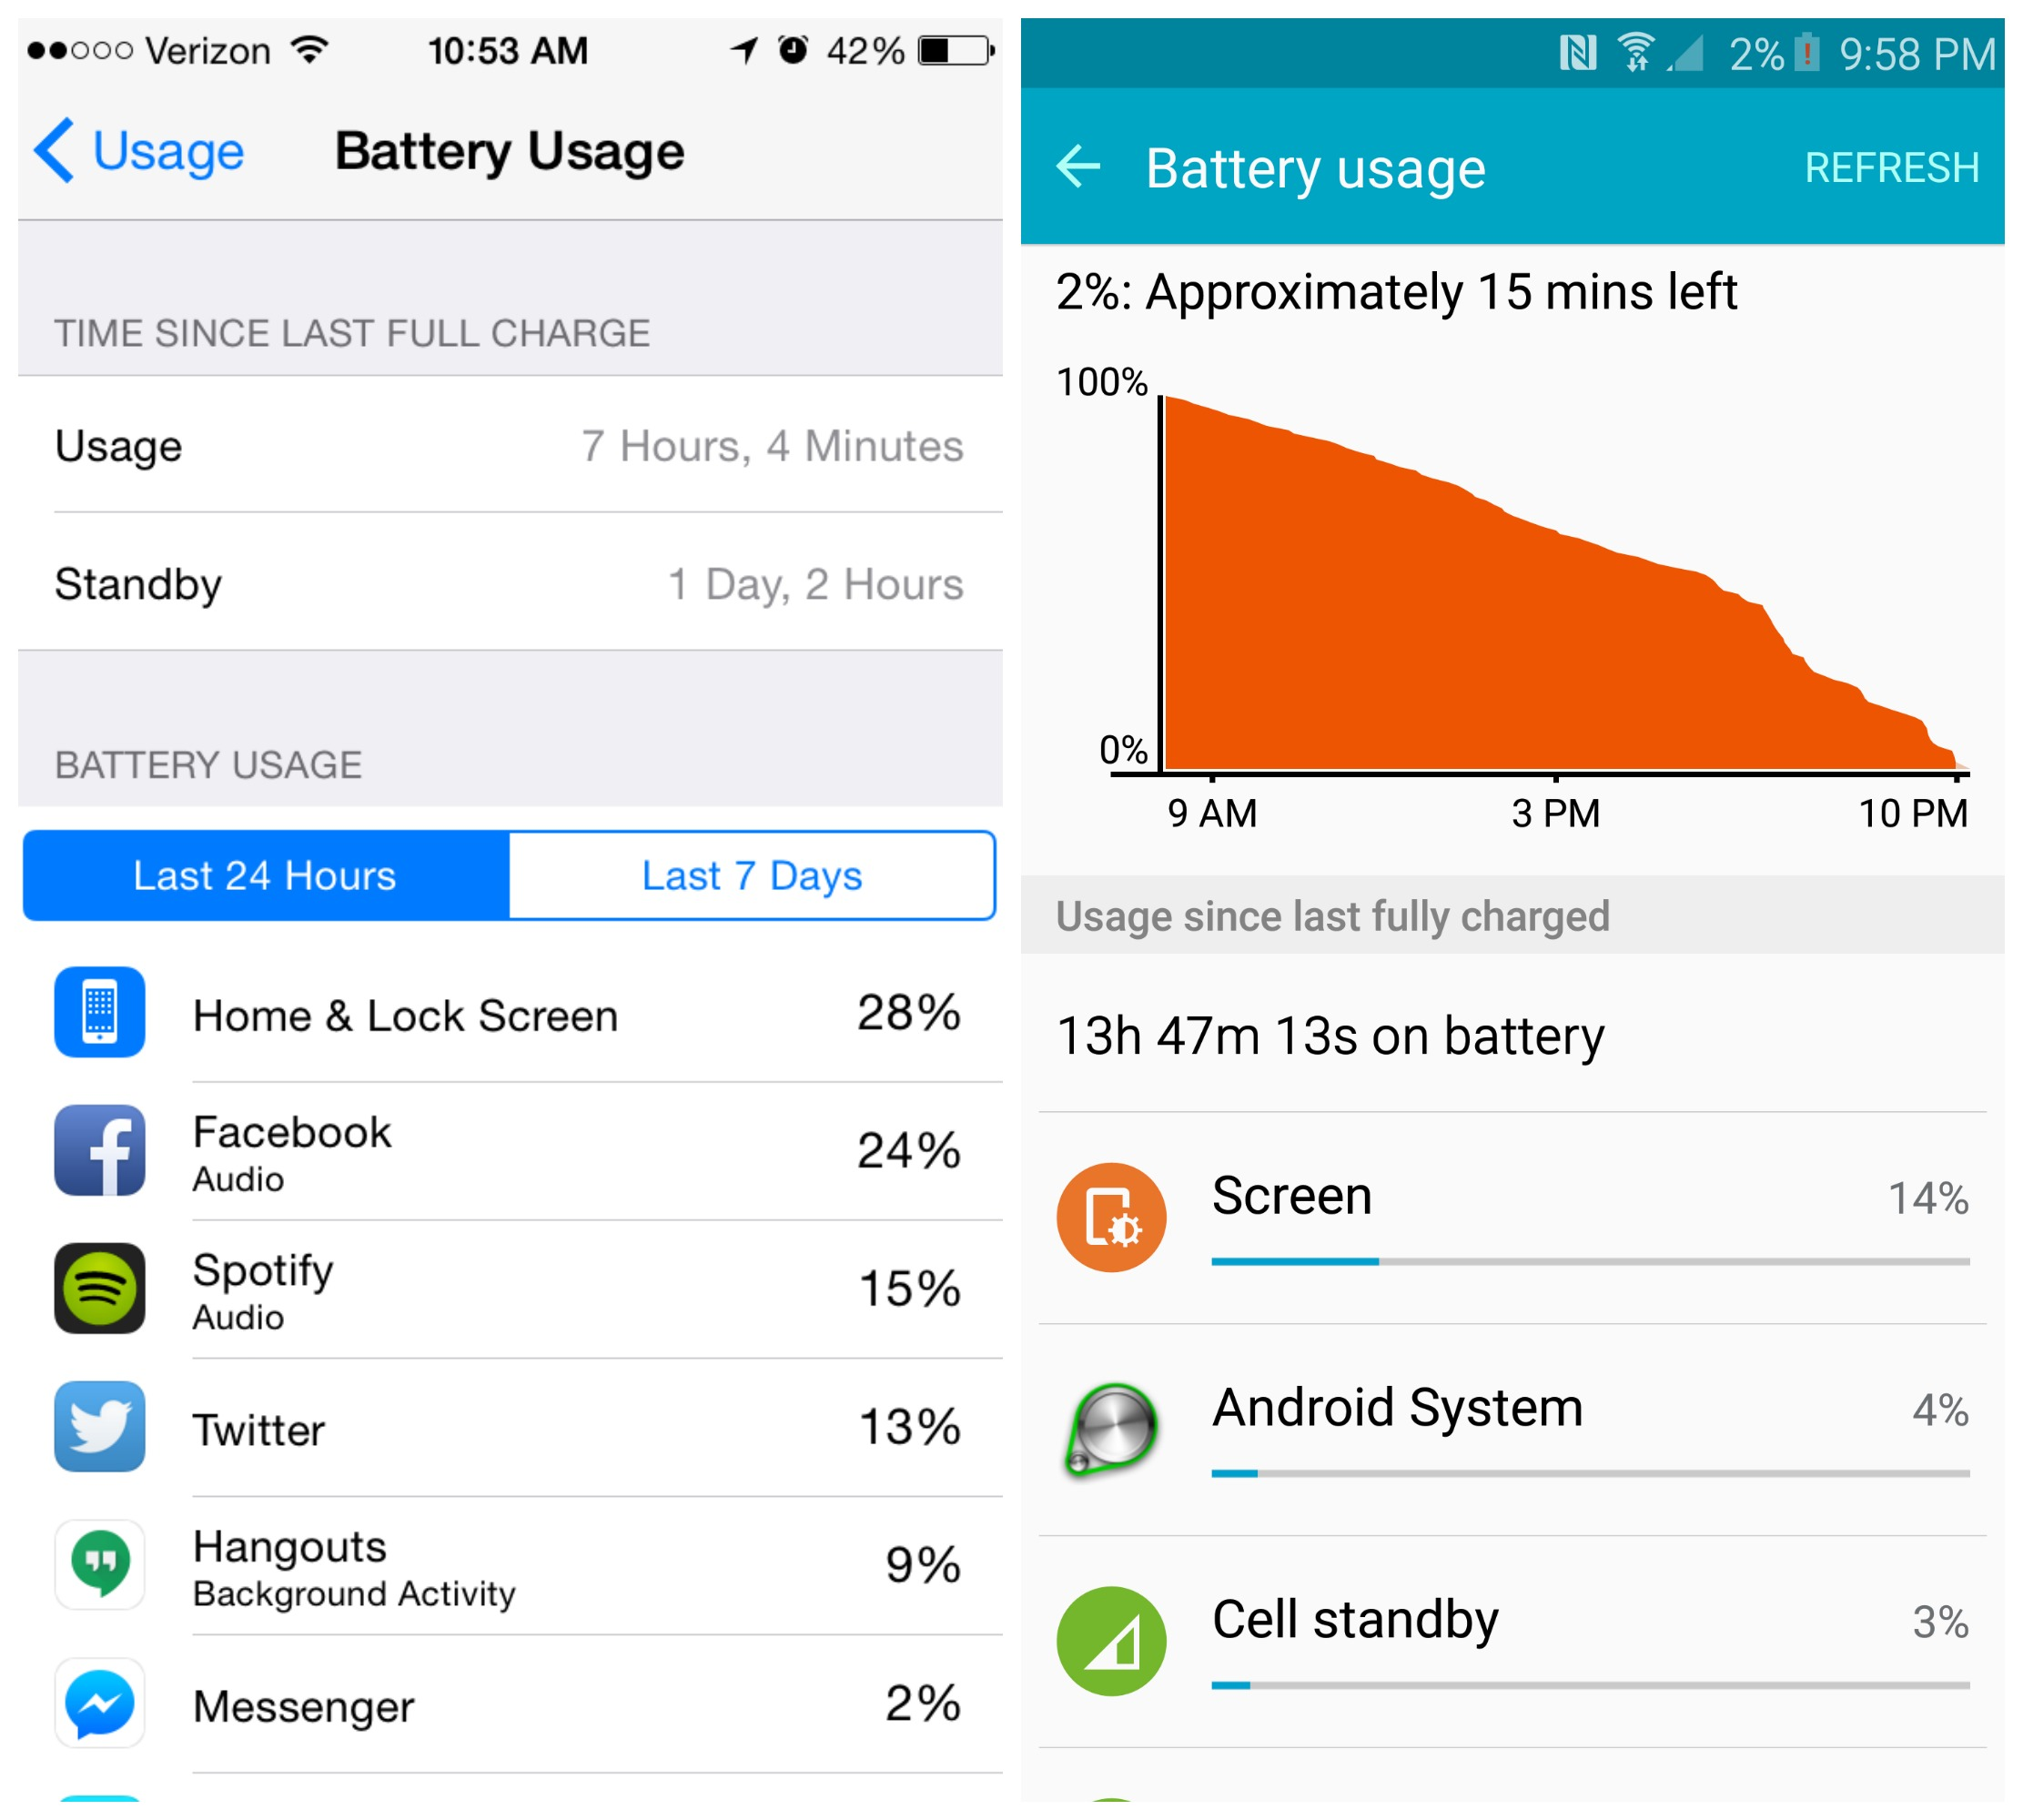 Iphone 6s Vs Galaxy S6 Battery Life